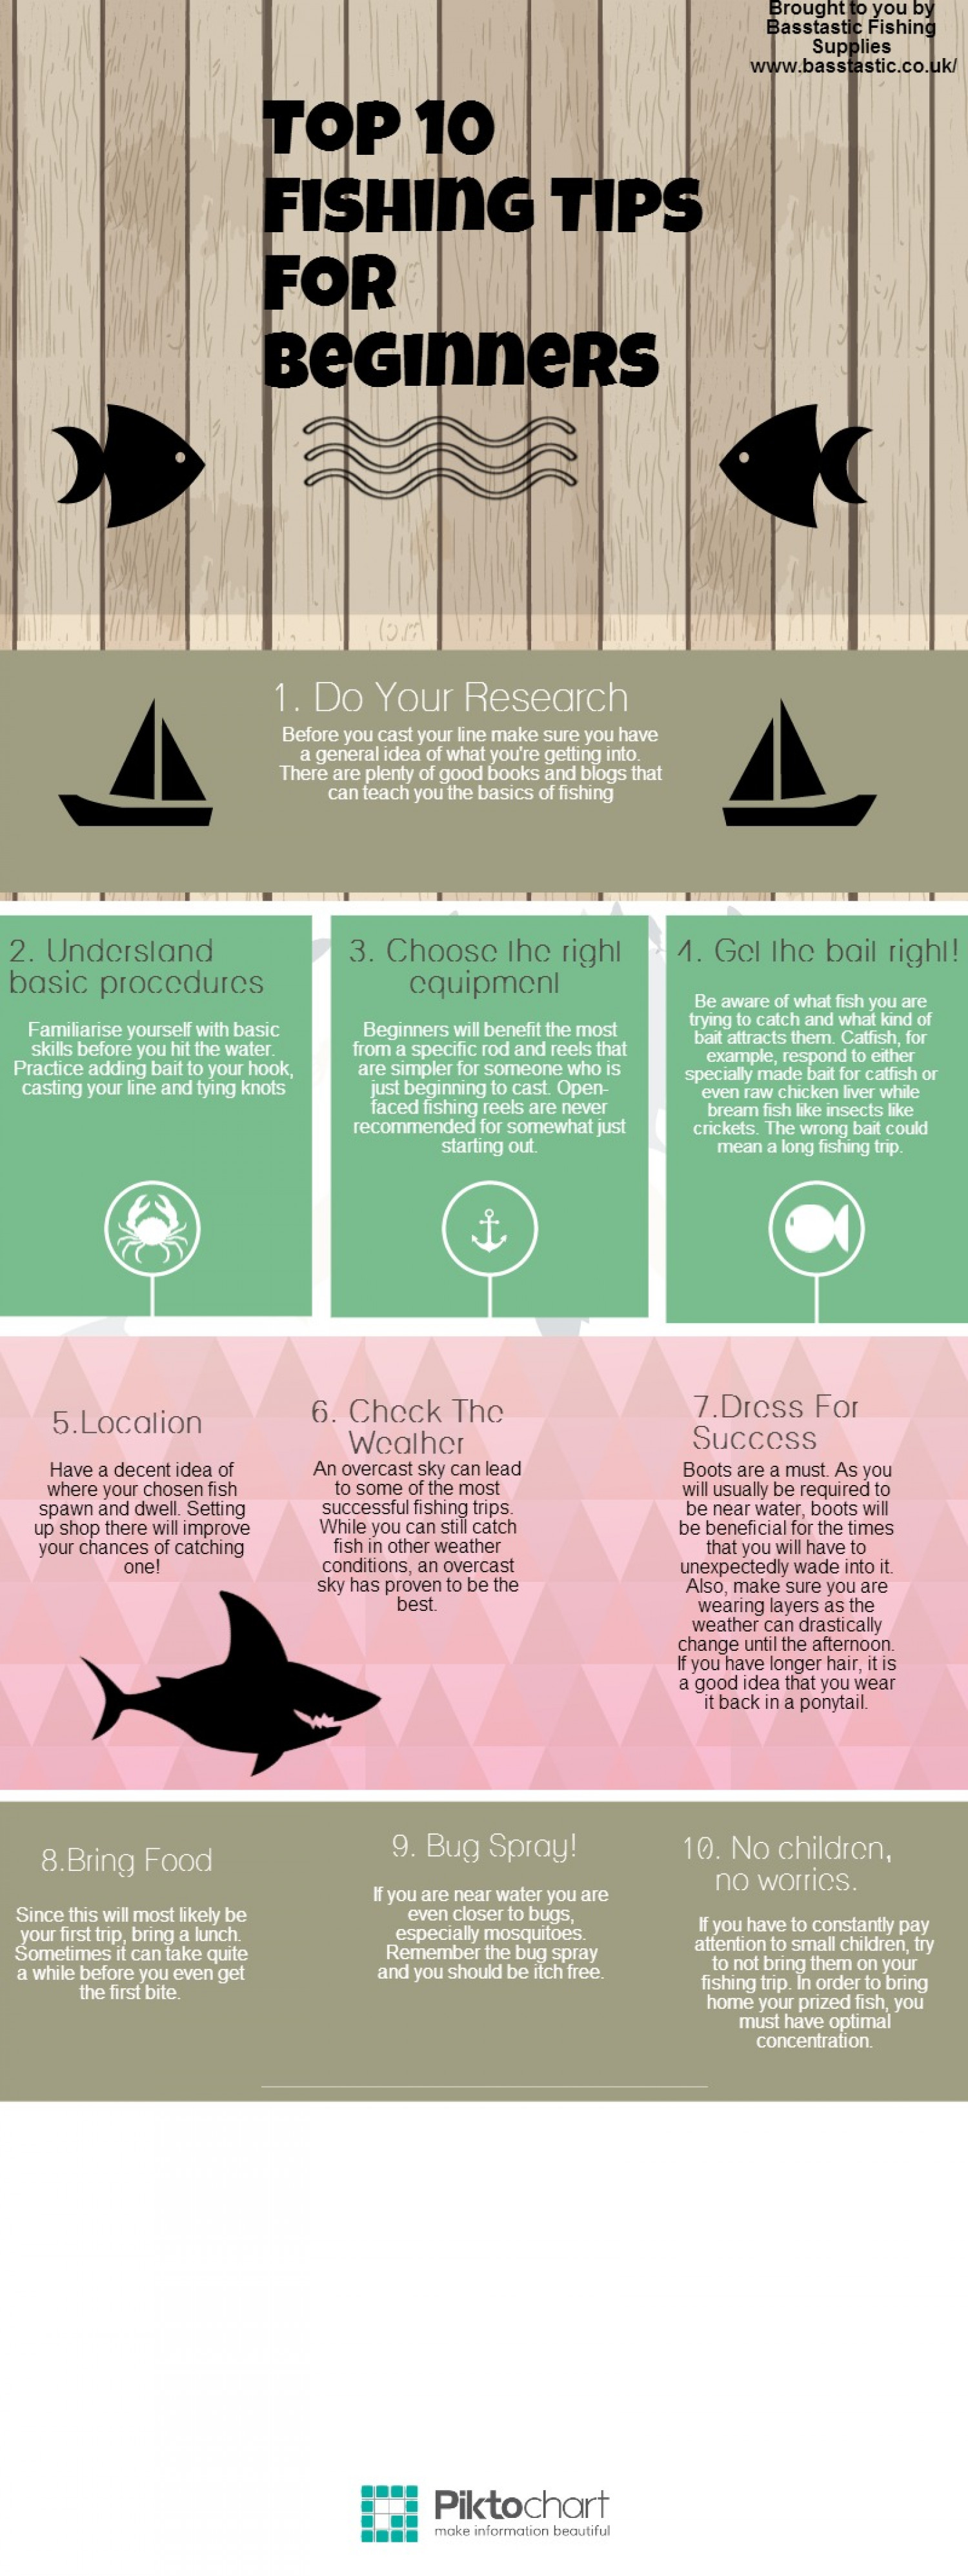 Top Fishing Tips For Beginners Infographic